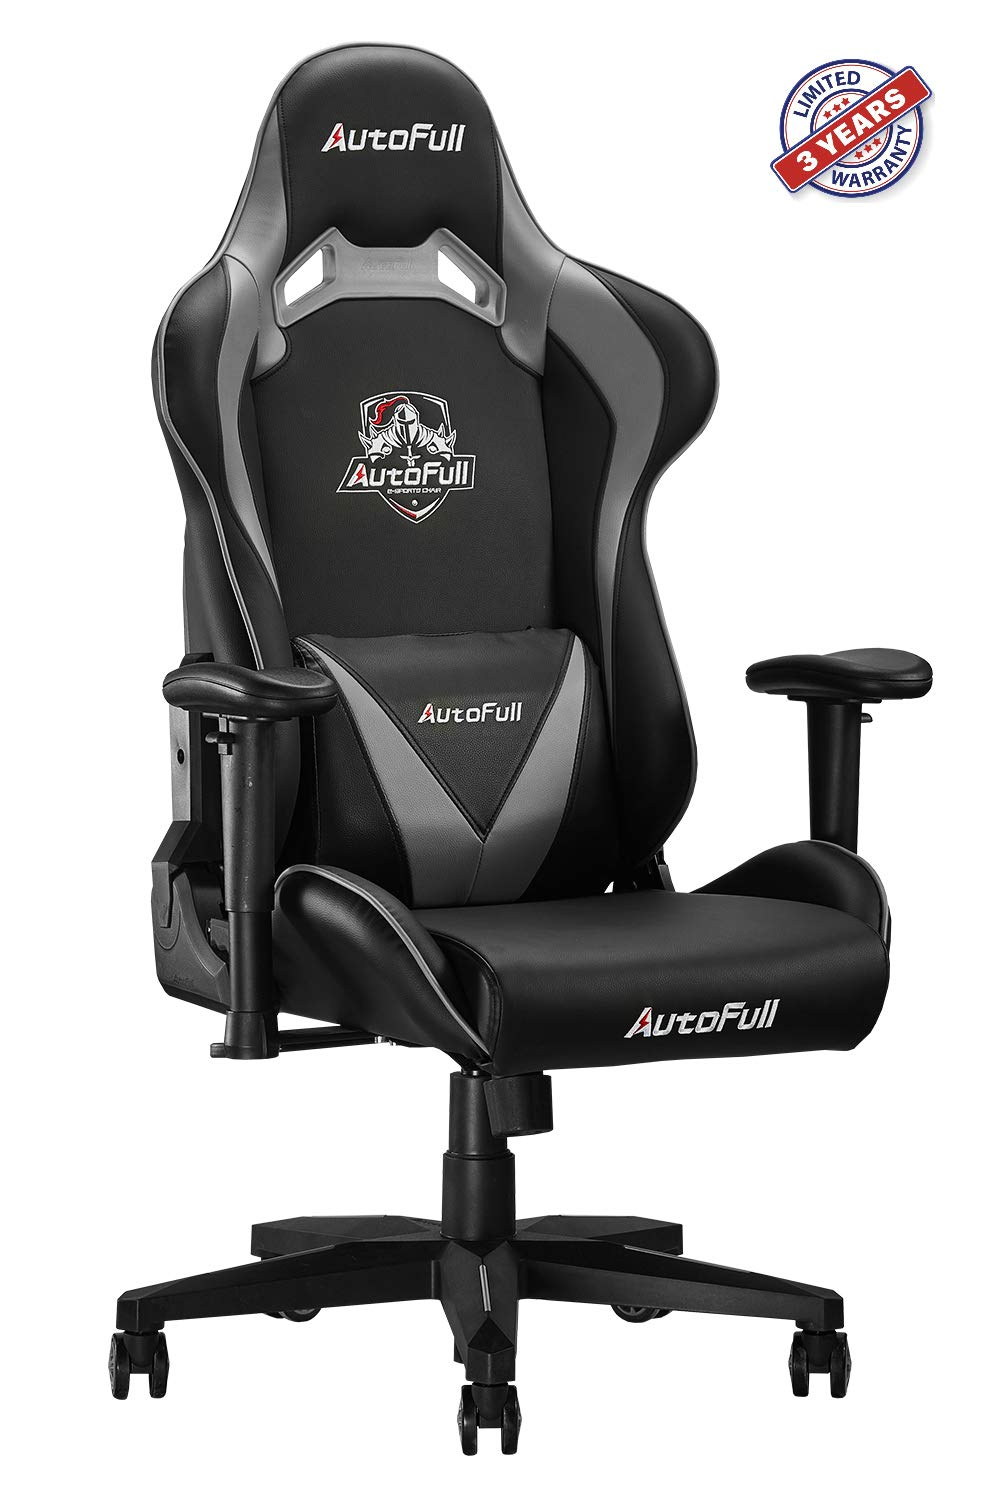 AutoFull Computer Gaming Chair - Adjustable Reclining High-Back PU Leather Swivel Game Chair with Headrest and Lumbar Support (PU, B-Grey)